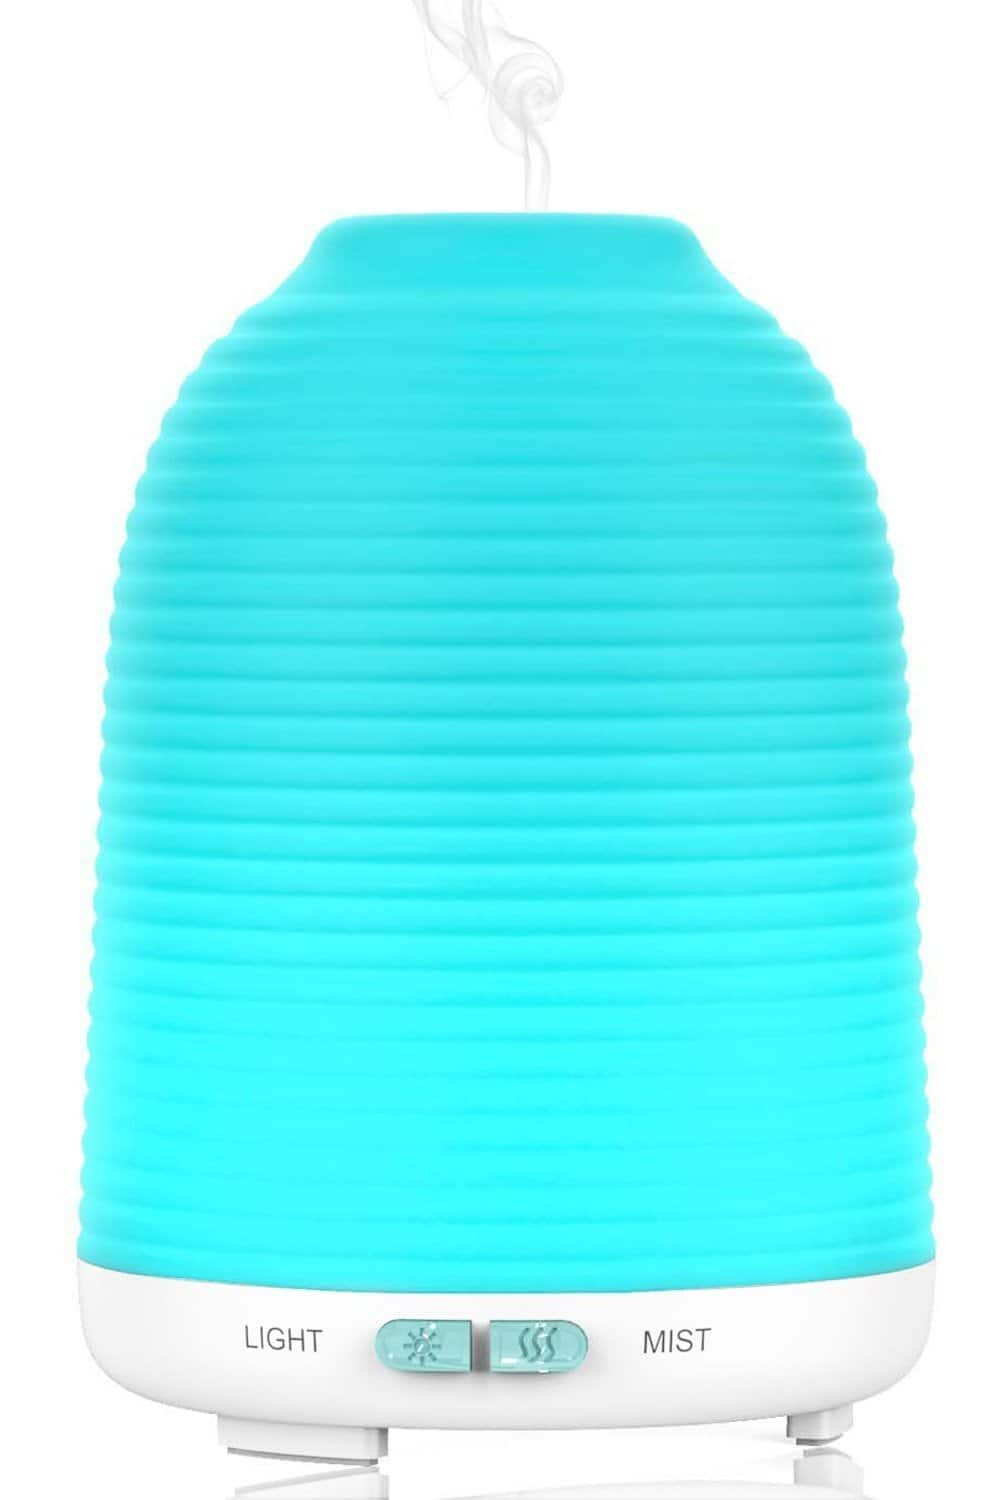 Aromatherapy Essential Oil Diffuser & Cool Mist Humidifier with Color Changing LED $7.99 w/ Possible FS @ Amazon